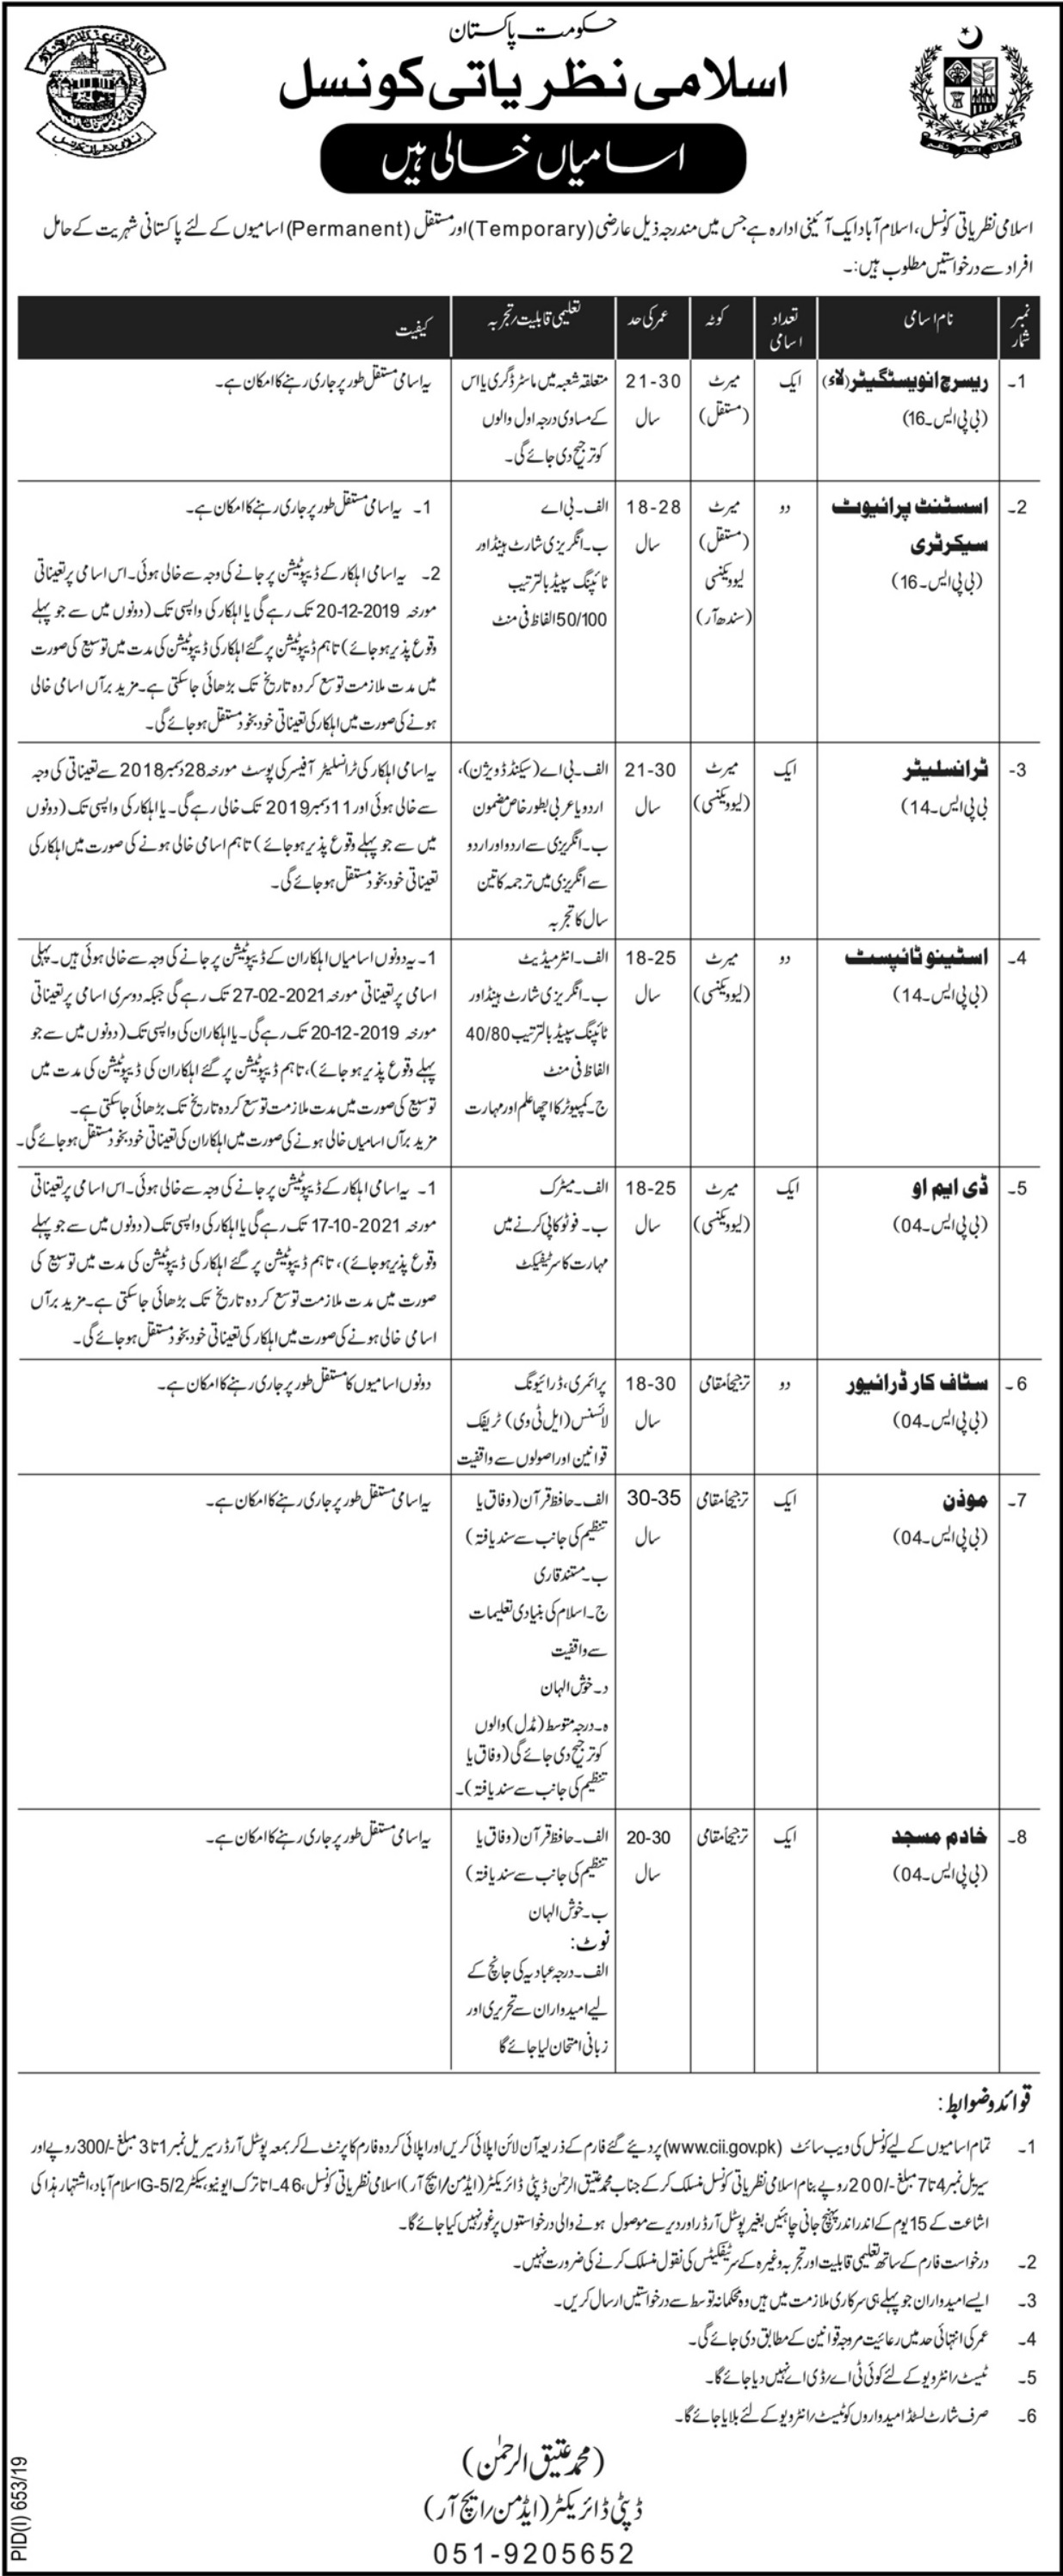 Council of Islamic Ideology Jobs 2019 Apply Online